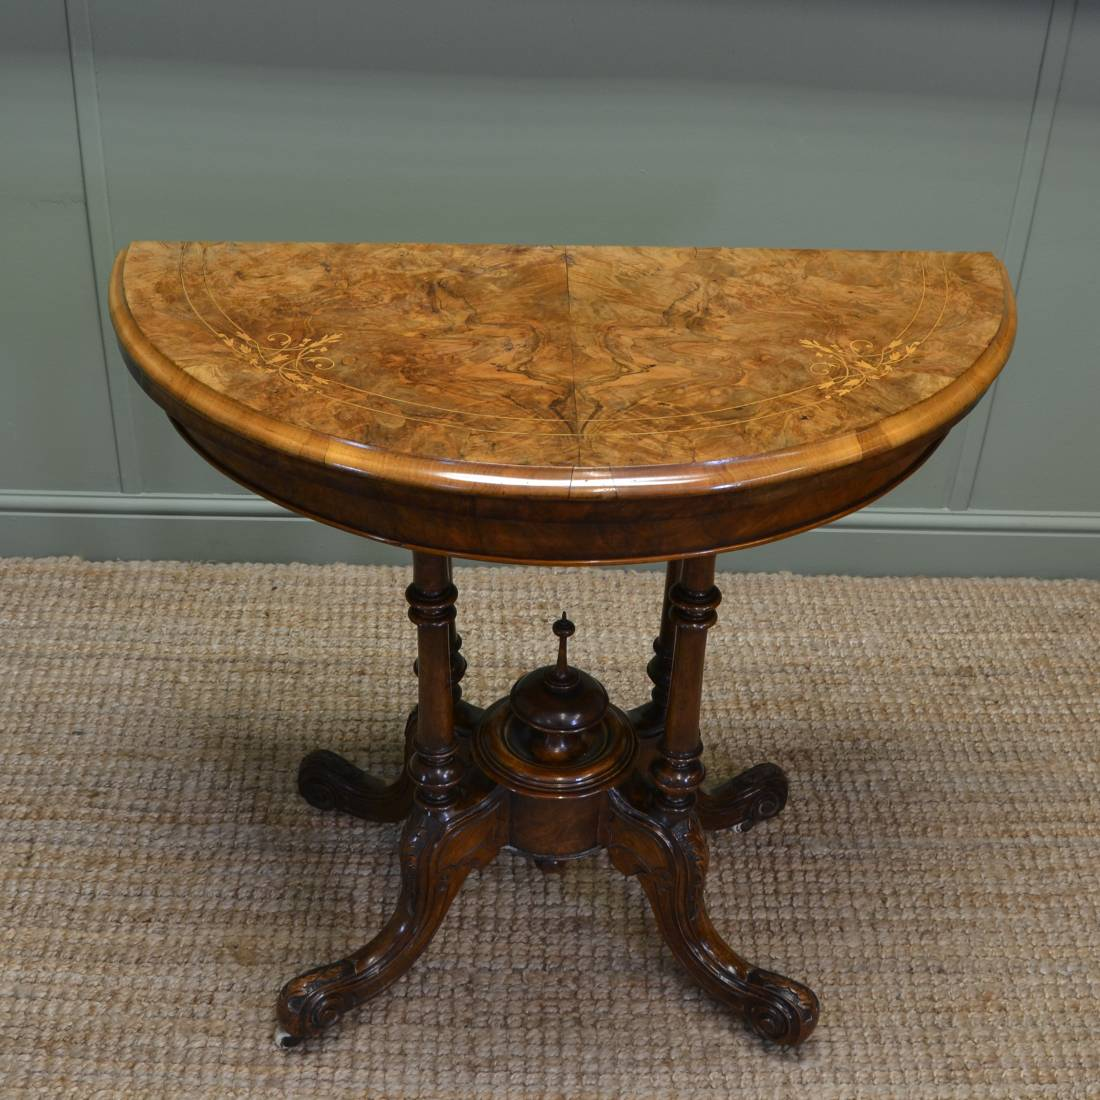 Antique card table regency card table inlaid card table antique - Beautifully Inlaid Burr Walnut Antique Card Table Console Table